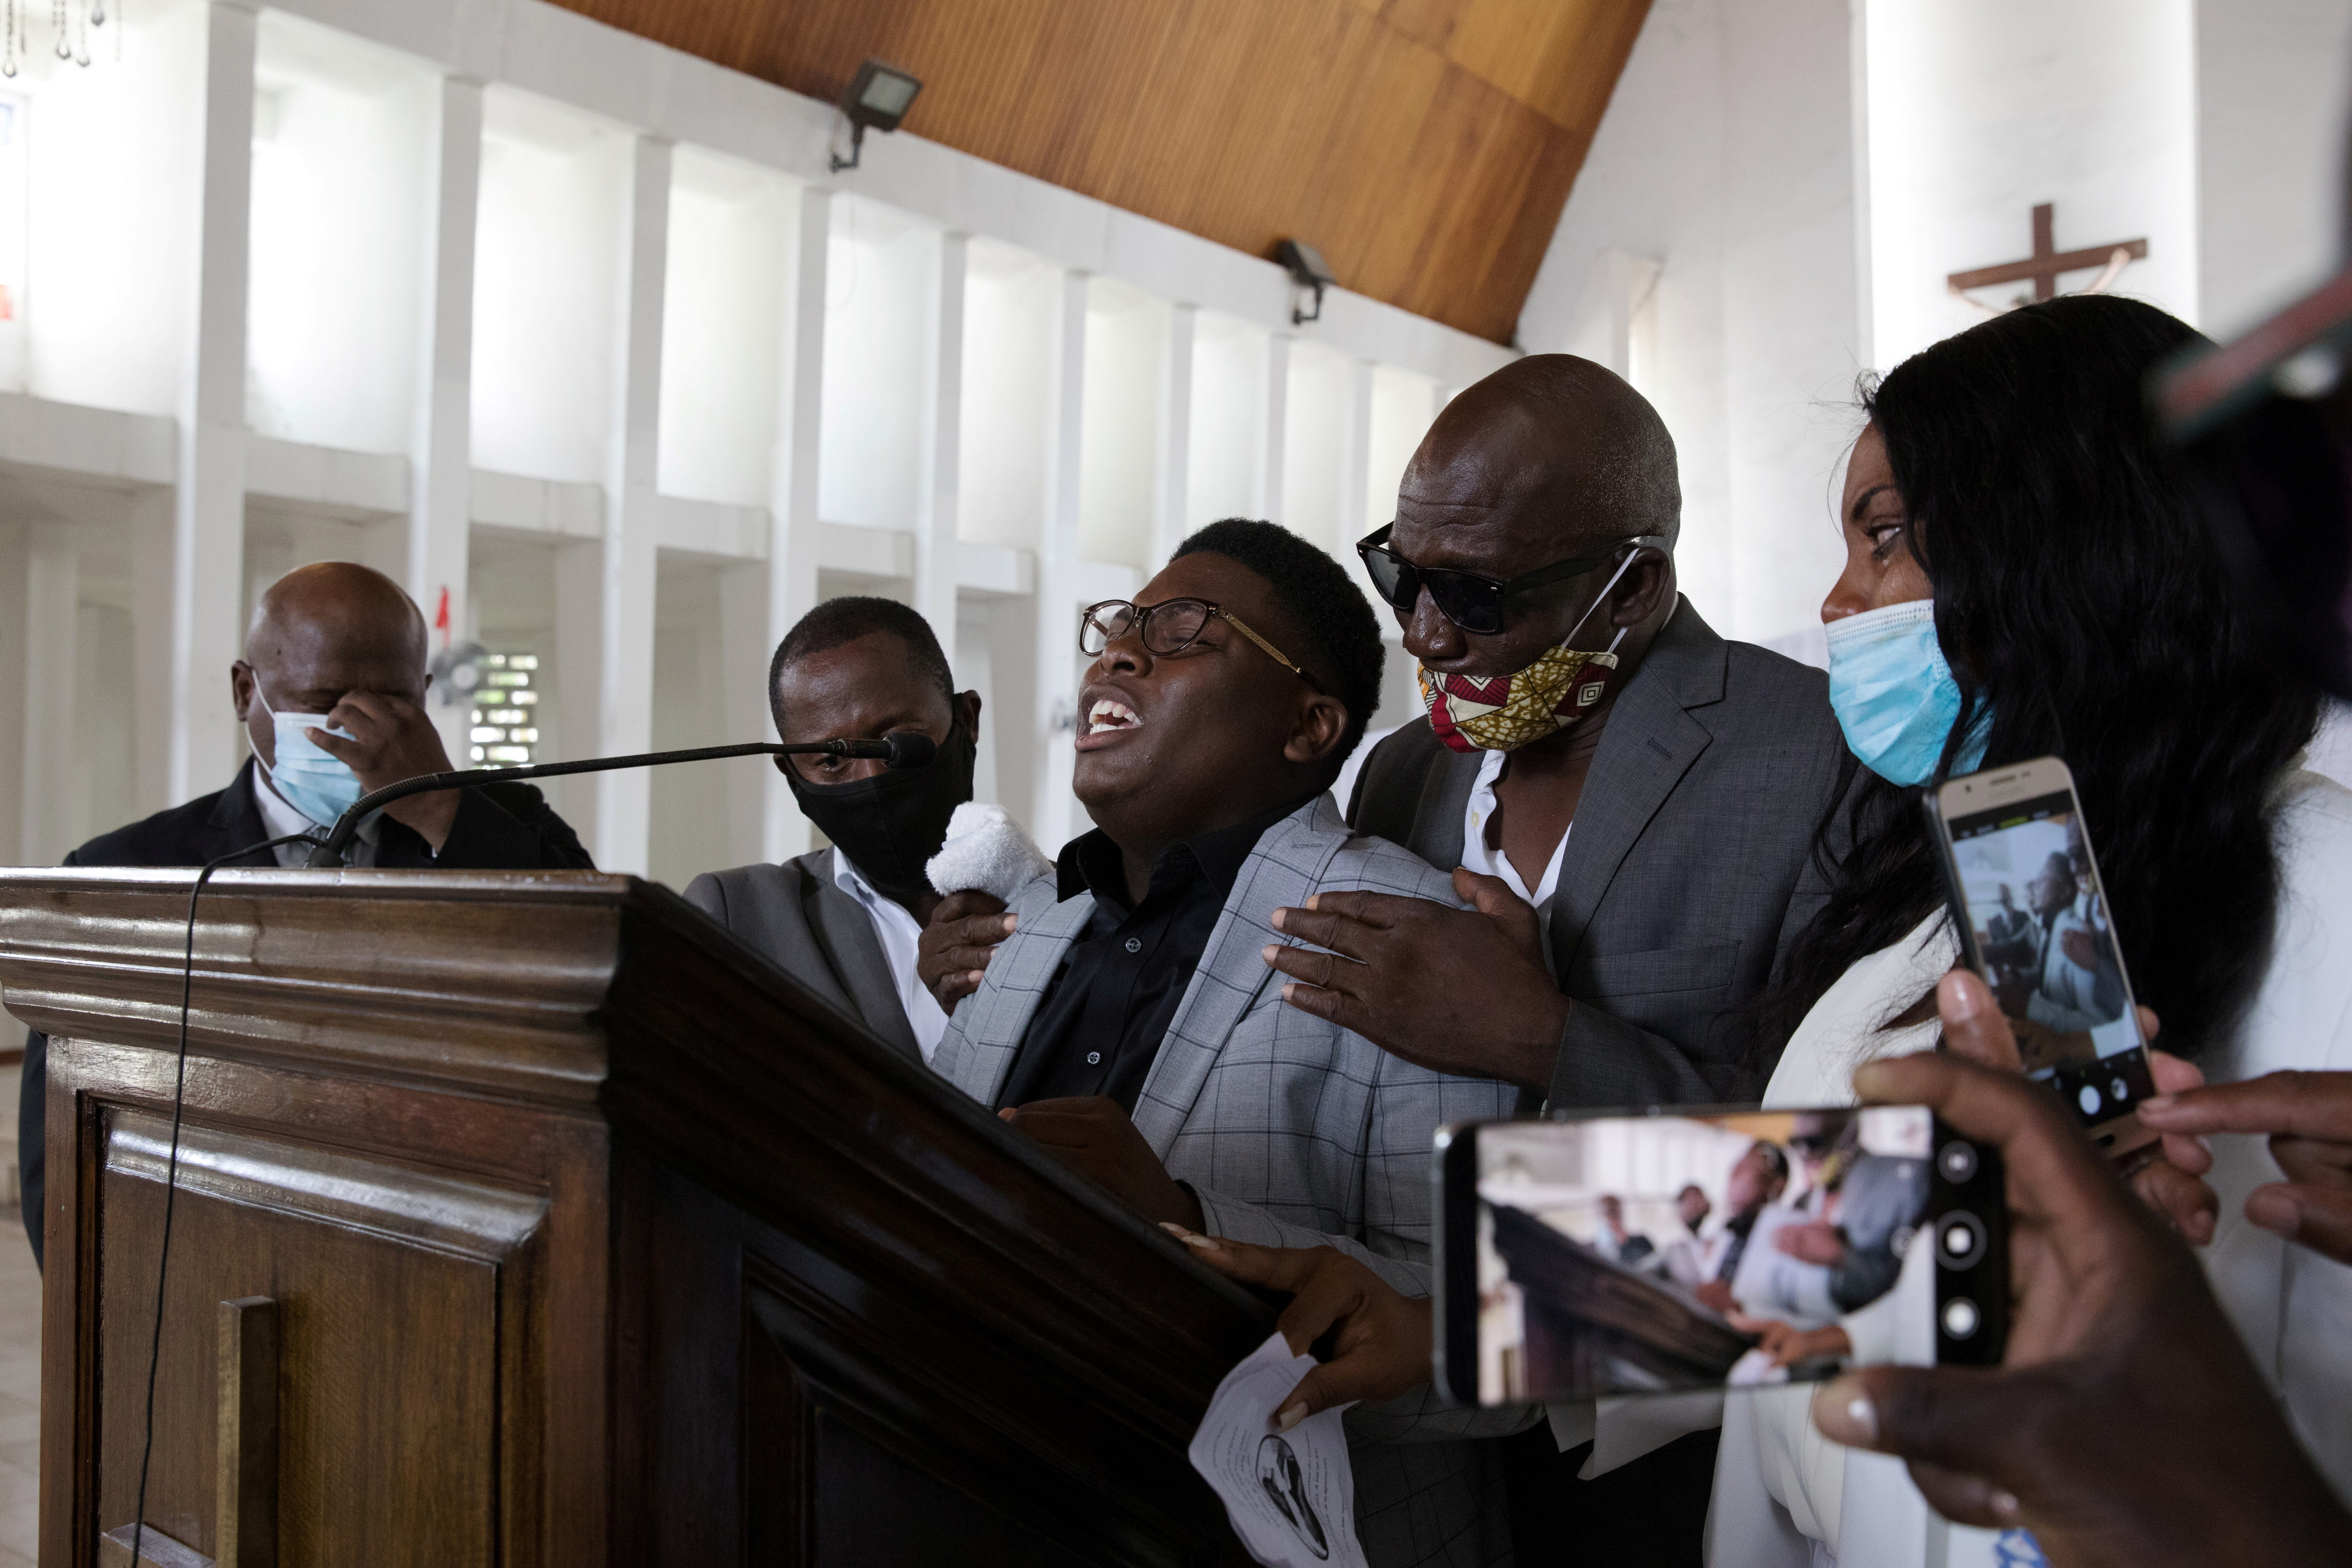 Anderson Laroche, 17, makes an emotional farewell speech to his deceased mother, Germanie Pierre in front of his family in Gonaives, Haiti, June 12, 2021. Despite the country's poverty, funerals are often extravagant social events in Haiti, complete with a festive wake and fanfare bands. Haiti's death rites are viewed as important to guarantee a safe passage to the afterworld – with cremations and organ donations rare because the deceased are deemed still to need their bodies - but also a way to mark one's social standing. REUTERS/Valerie Baeriswyl